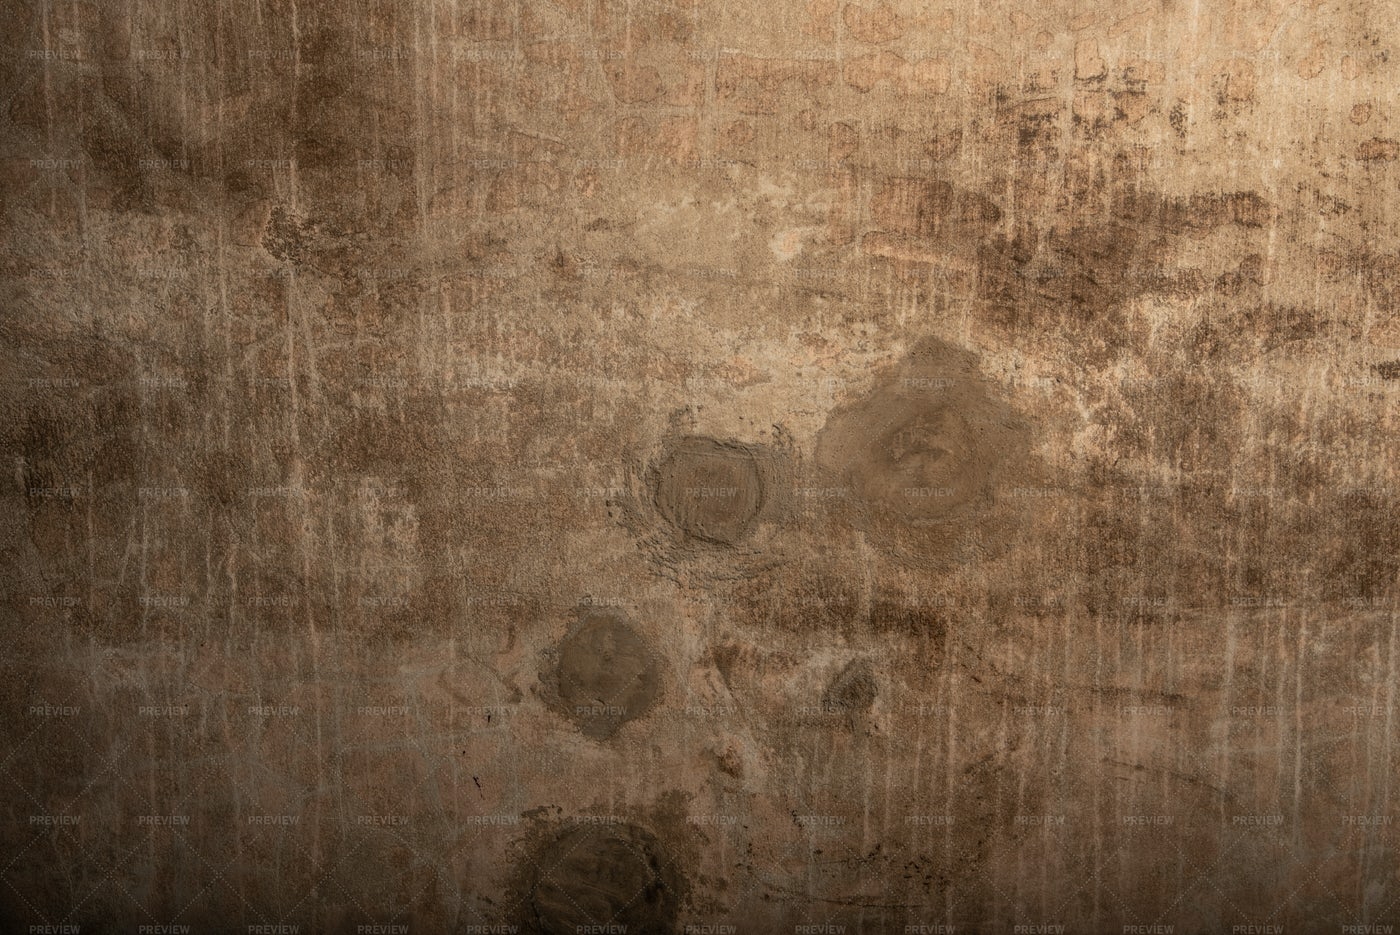 Mended Concrete Wall Texture: Stock Photos